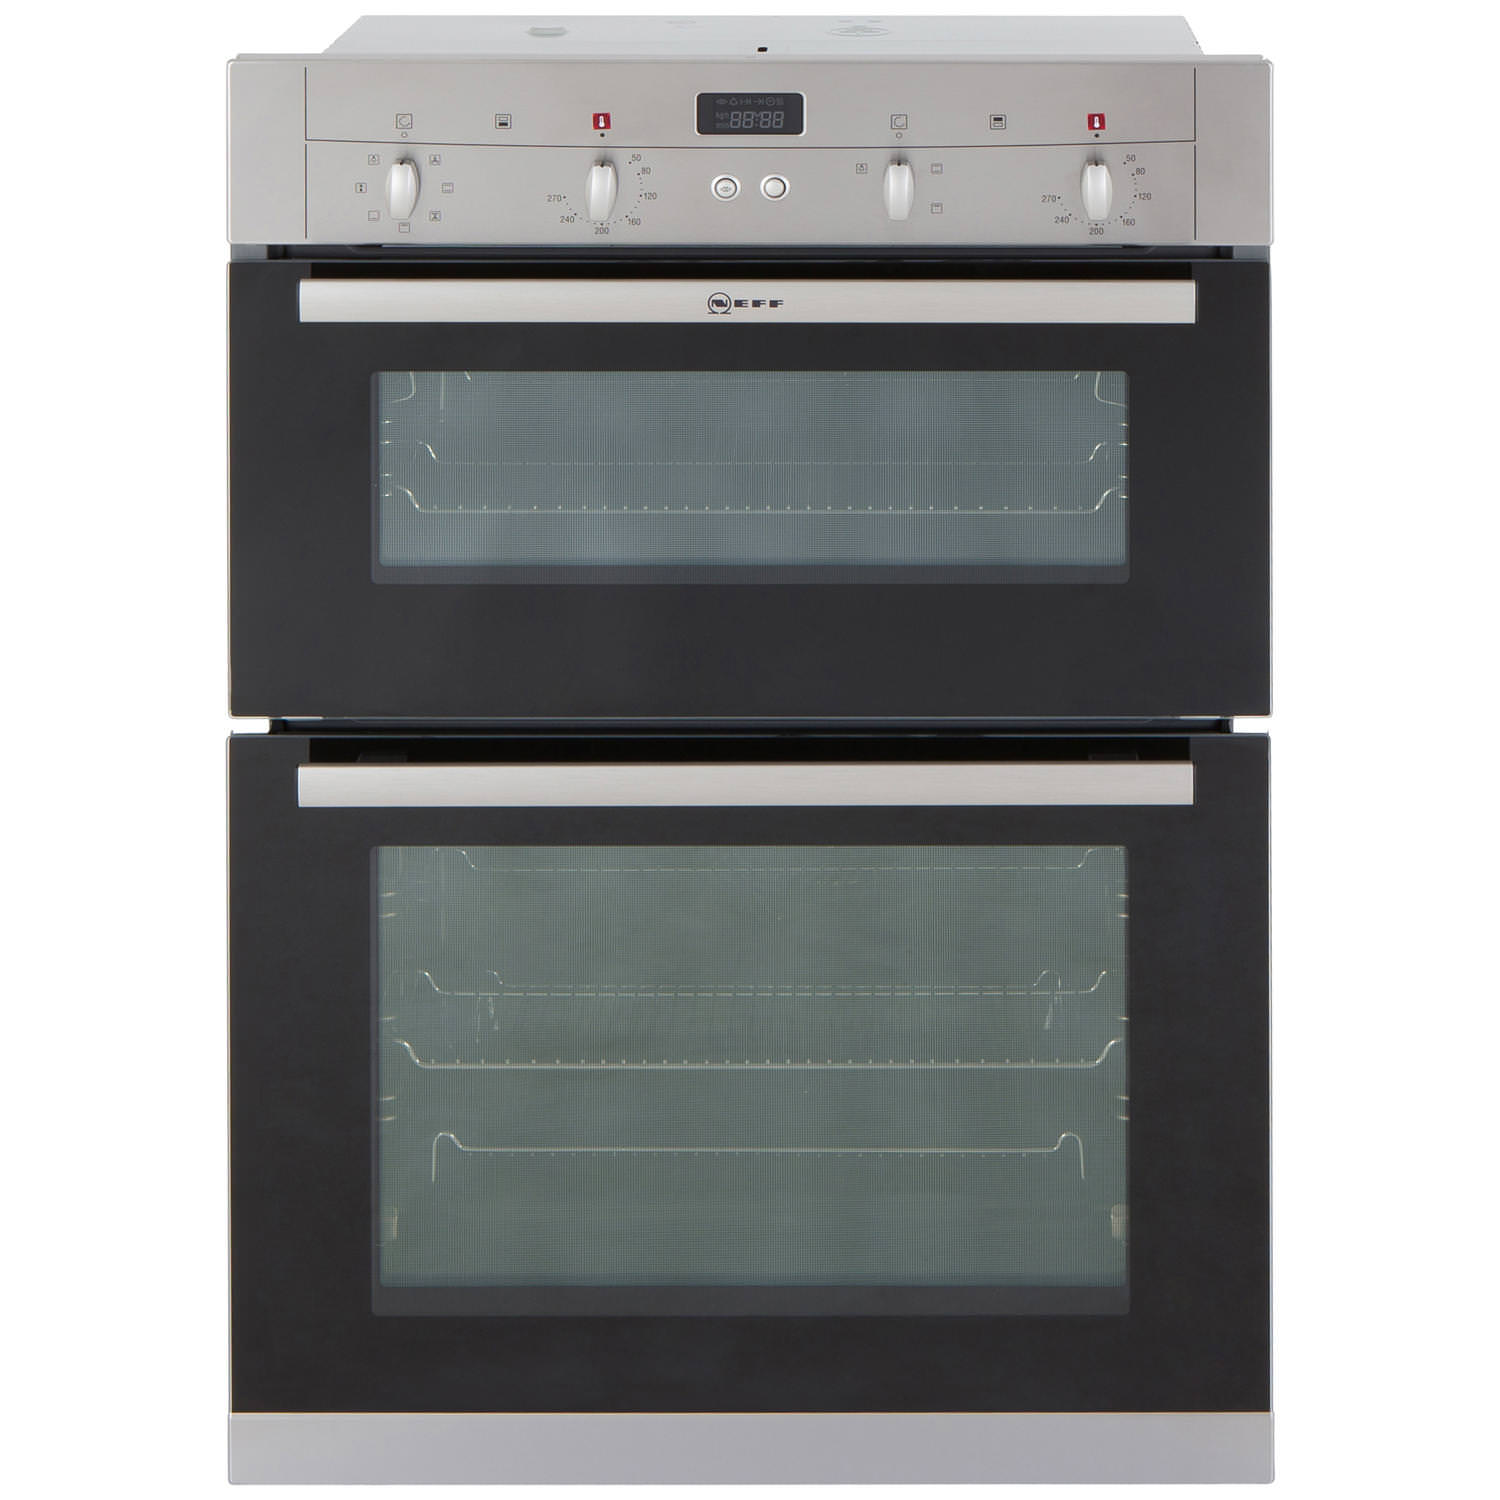 Neff U12S53N3GB Built-In Single Electric Oven